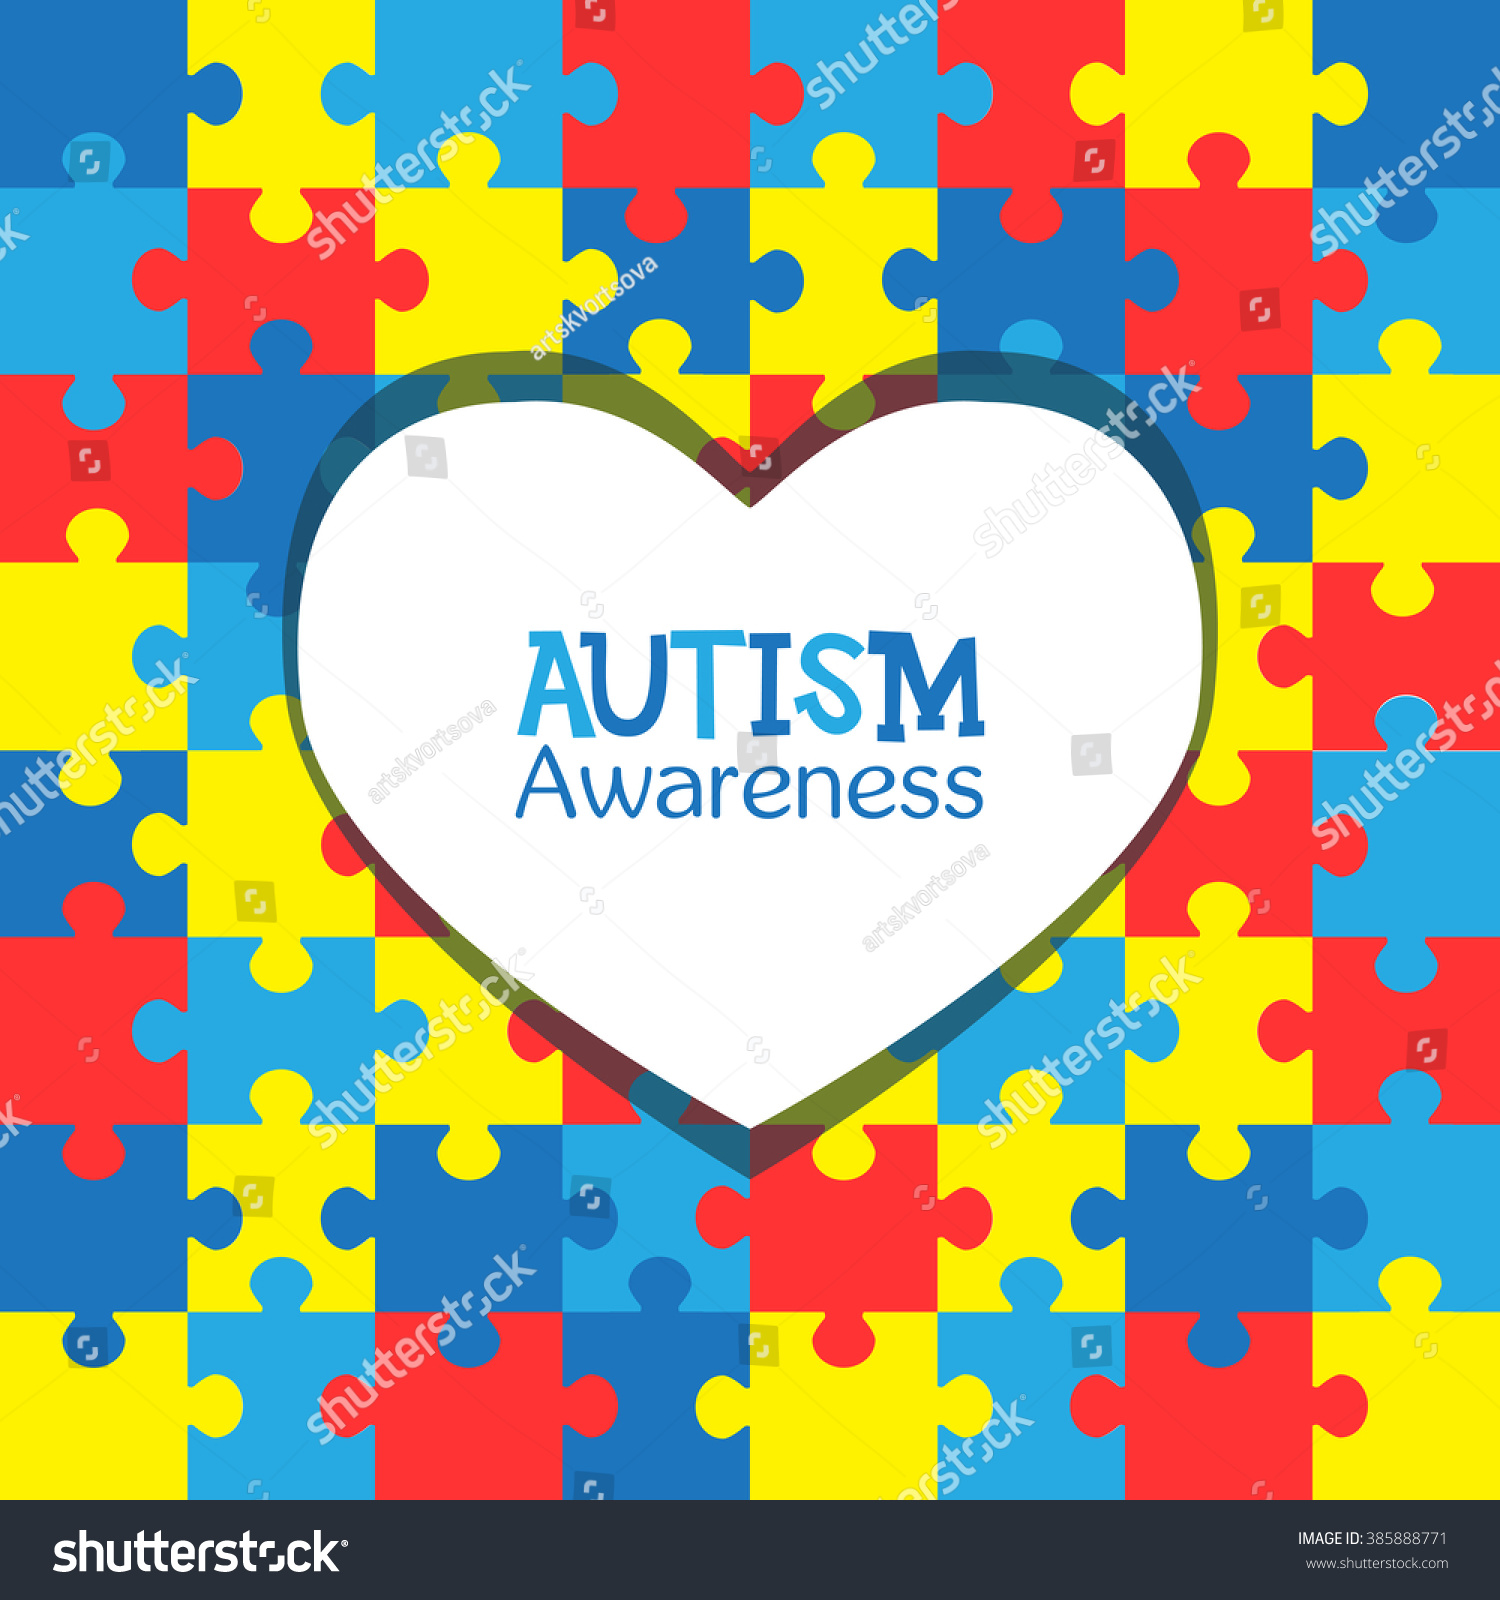 World autism awareness day colorful puzzles stock vector 385888771 world autism awareness day colorful puzzles vector background with heart symbol of autism biocorpaavc Gallery